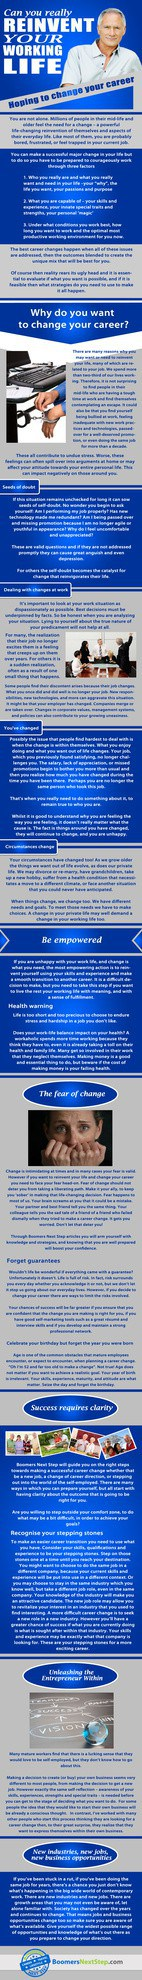 Infographic about whether you can reinvent your career